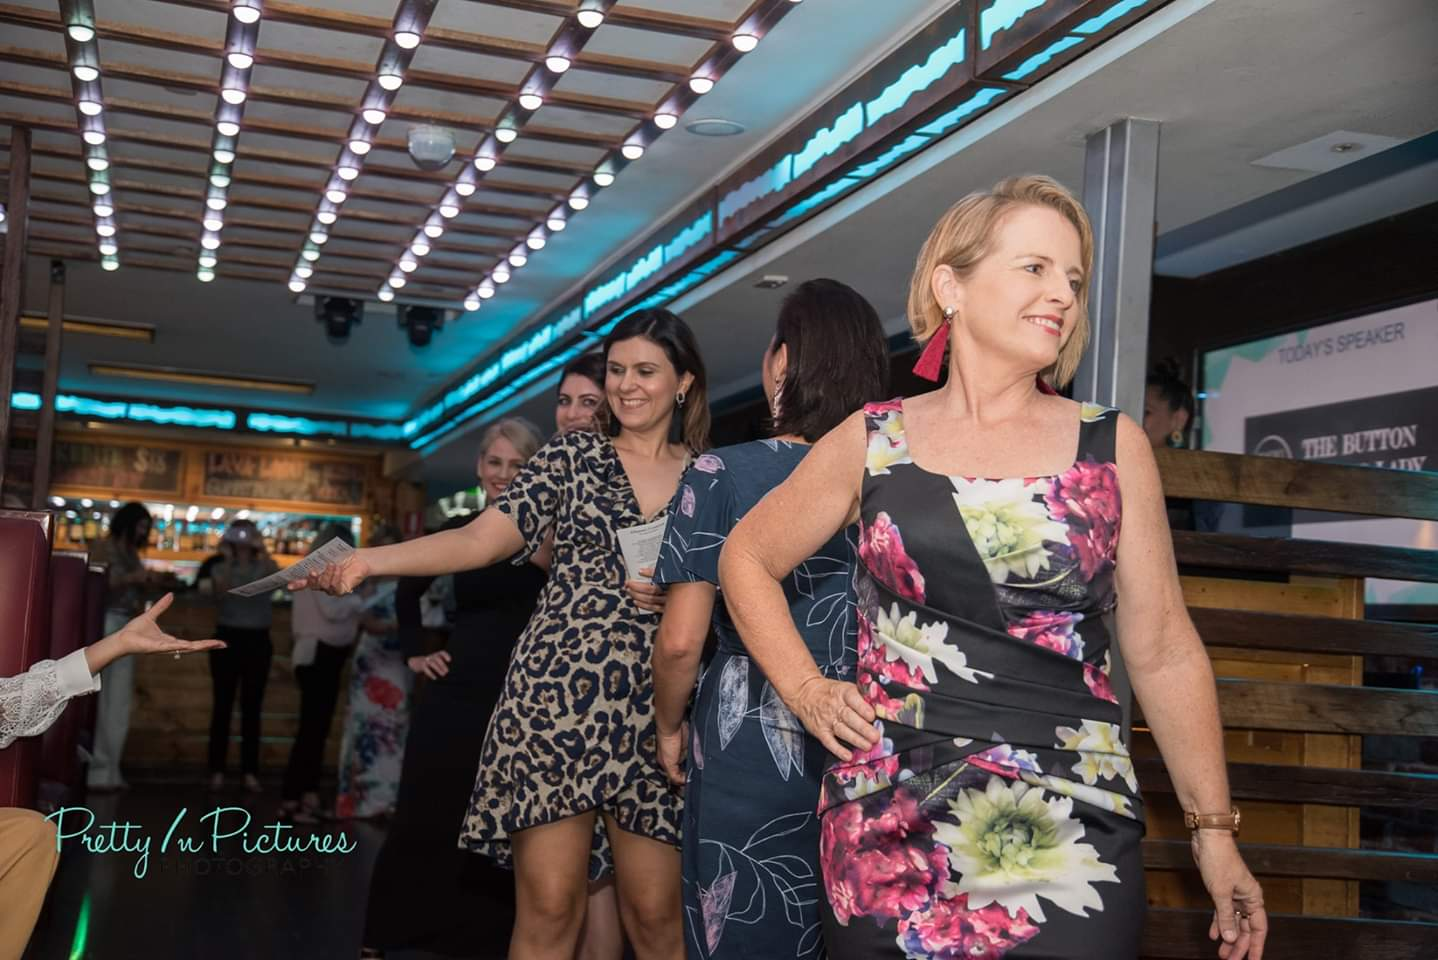 Cairns Business Women's Club Fashion Parade Business & Bubbles at the Cotton Club Cairns